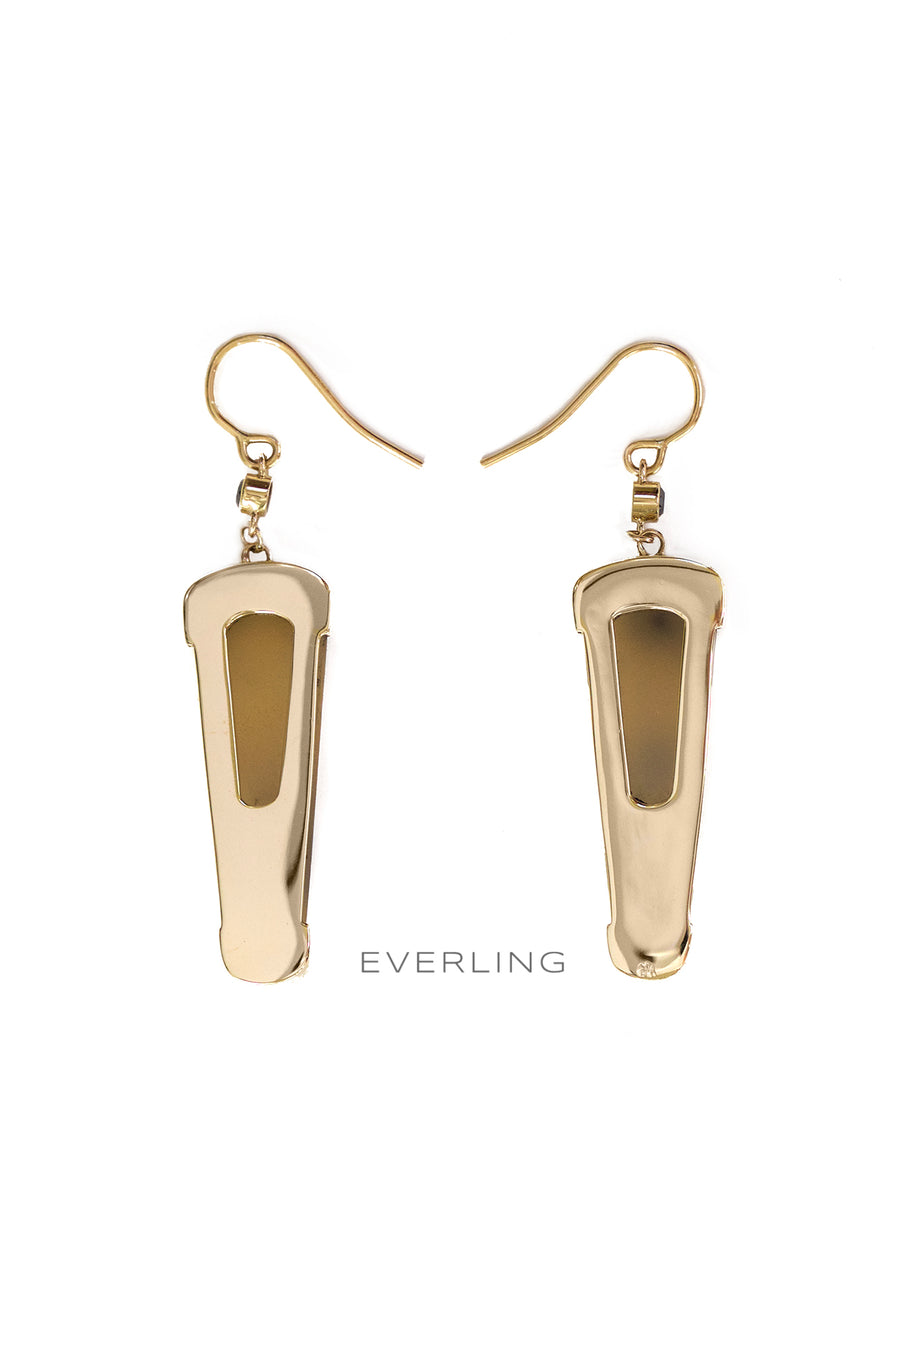 Back Detail-Recycled 18k yellow gold dangle earrings with druzy quartz and black diamonds. www.EverlingJewelry.com